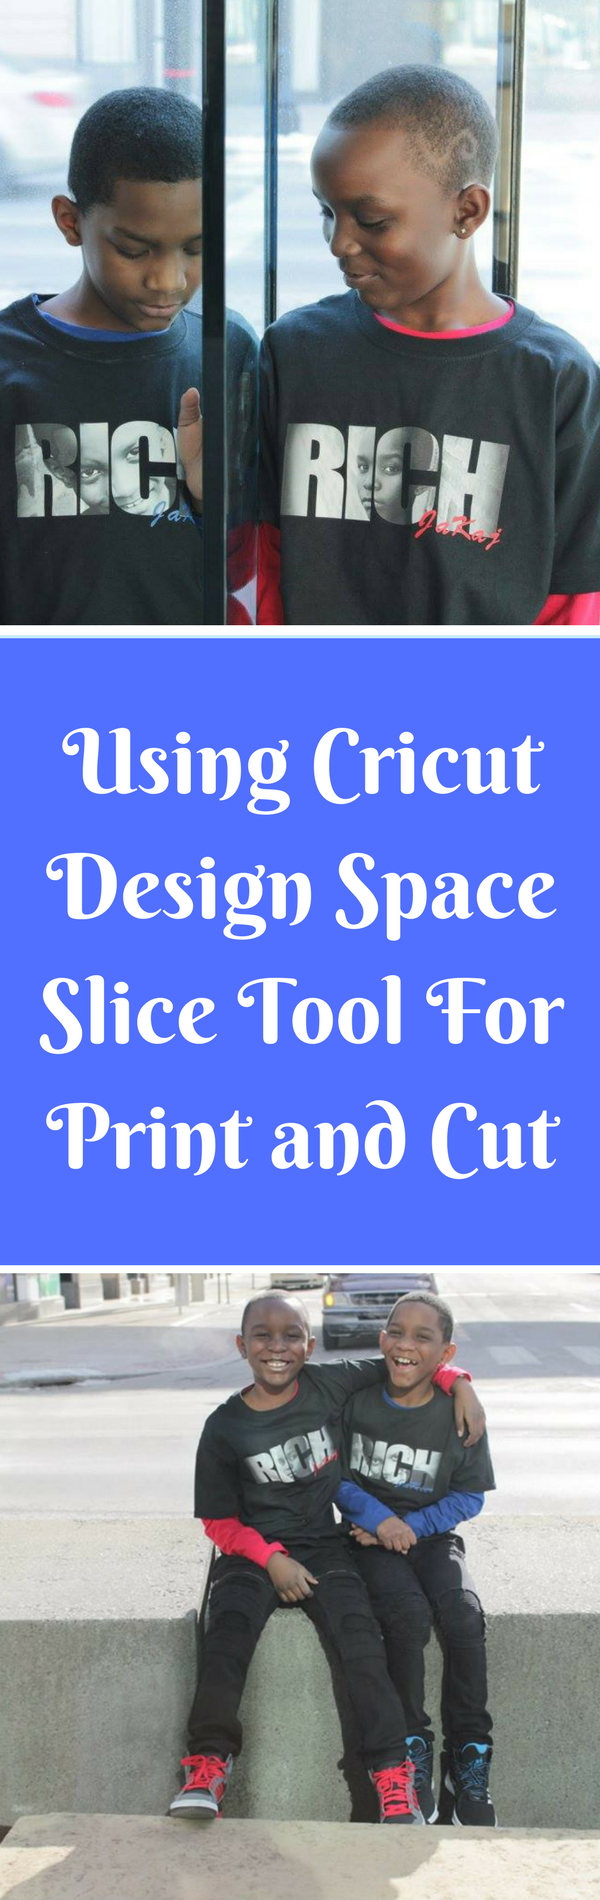 I did a video on how to use the Cricut Design Space slice tool to do a pattern fill print and cut. #cricuttutorials #tutorials #cricut #cricutdesignspace